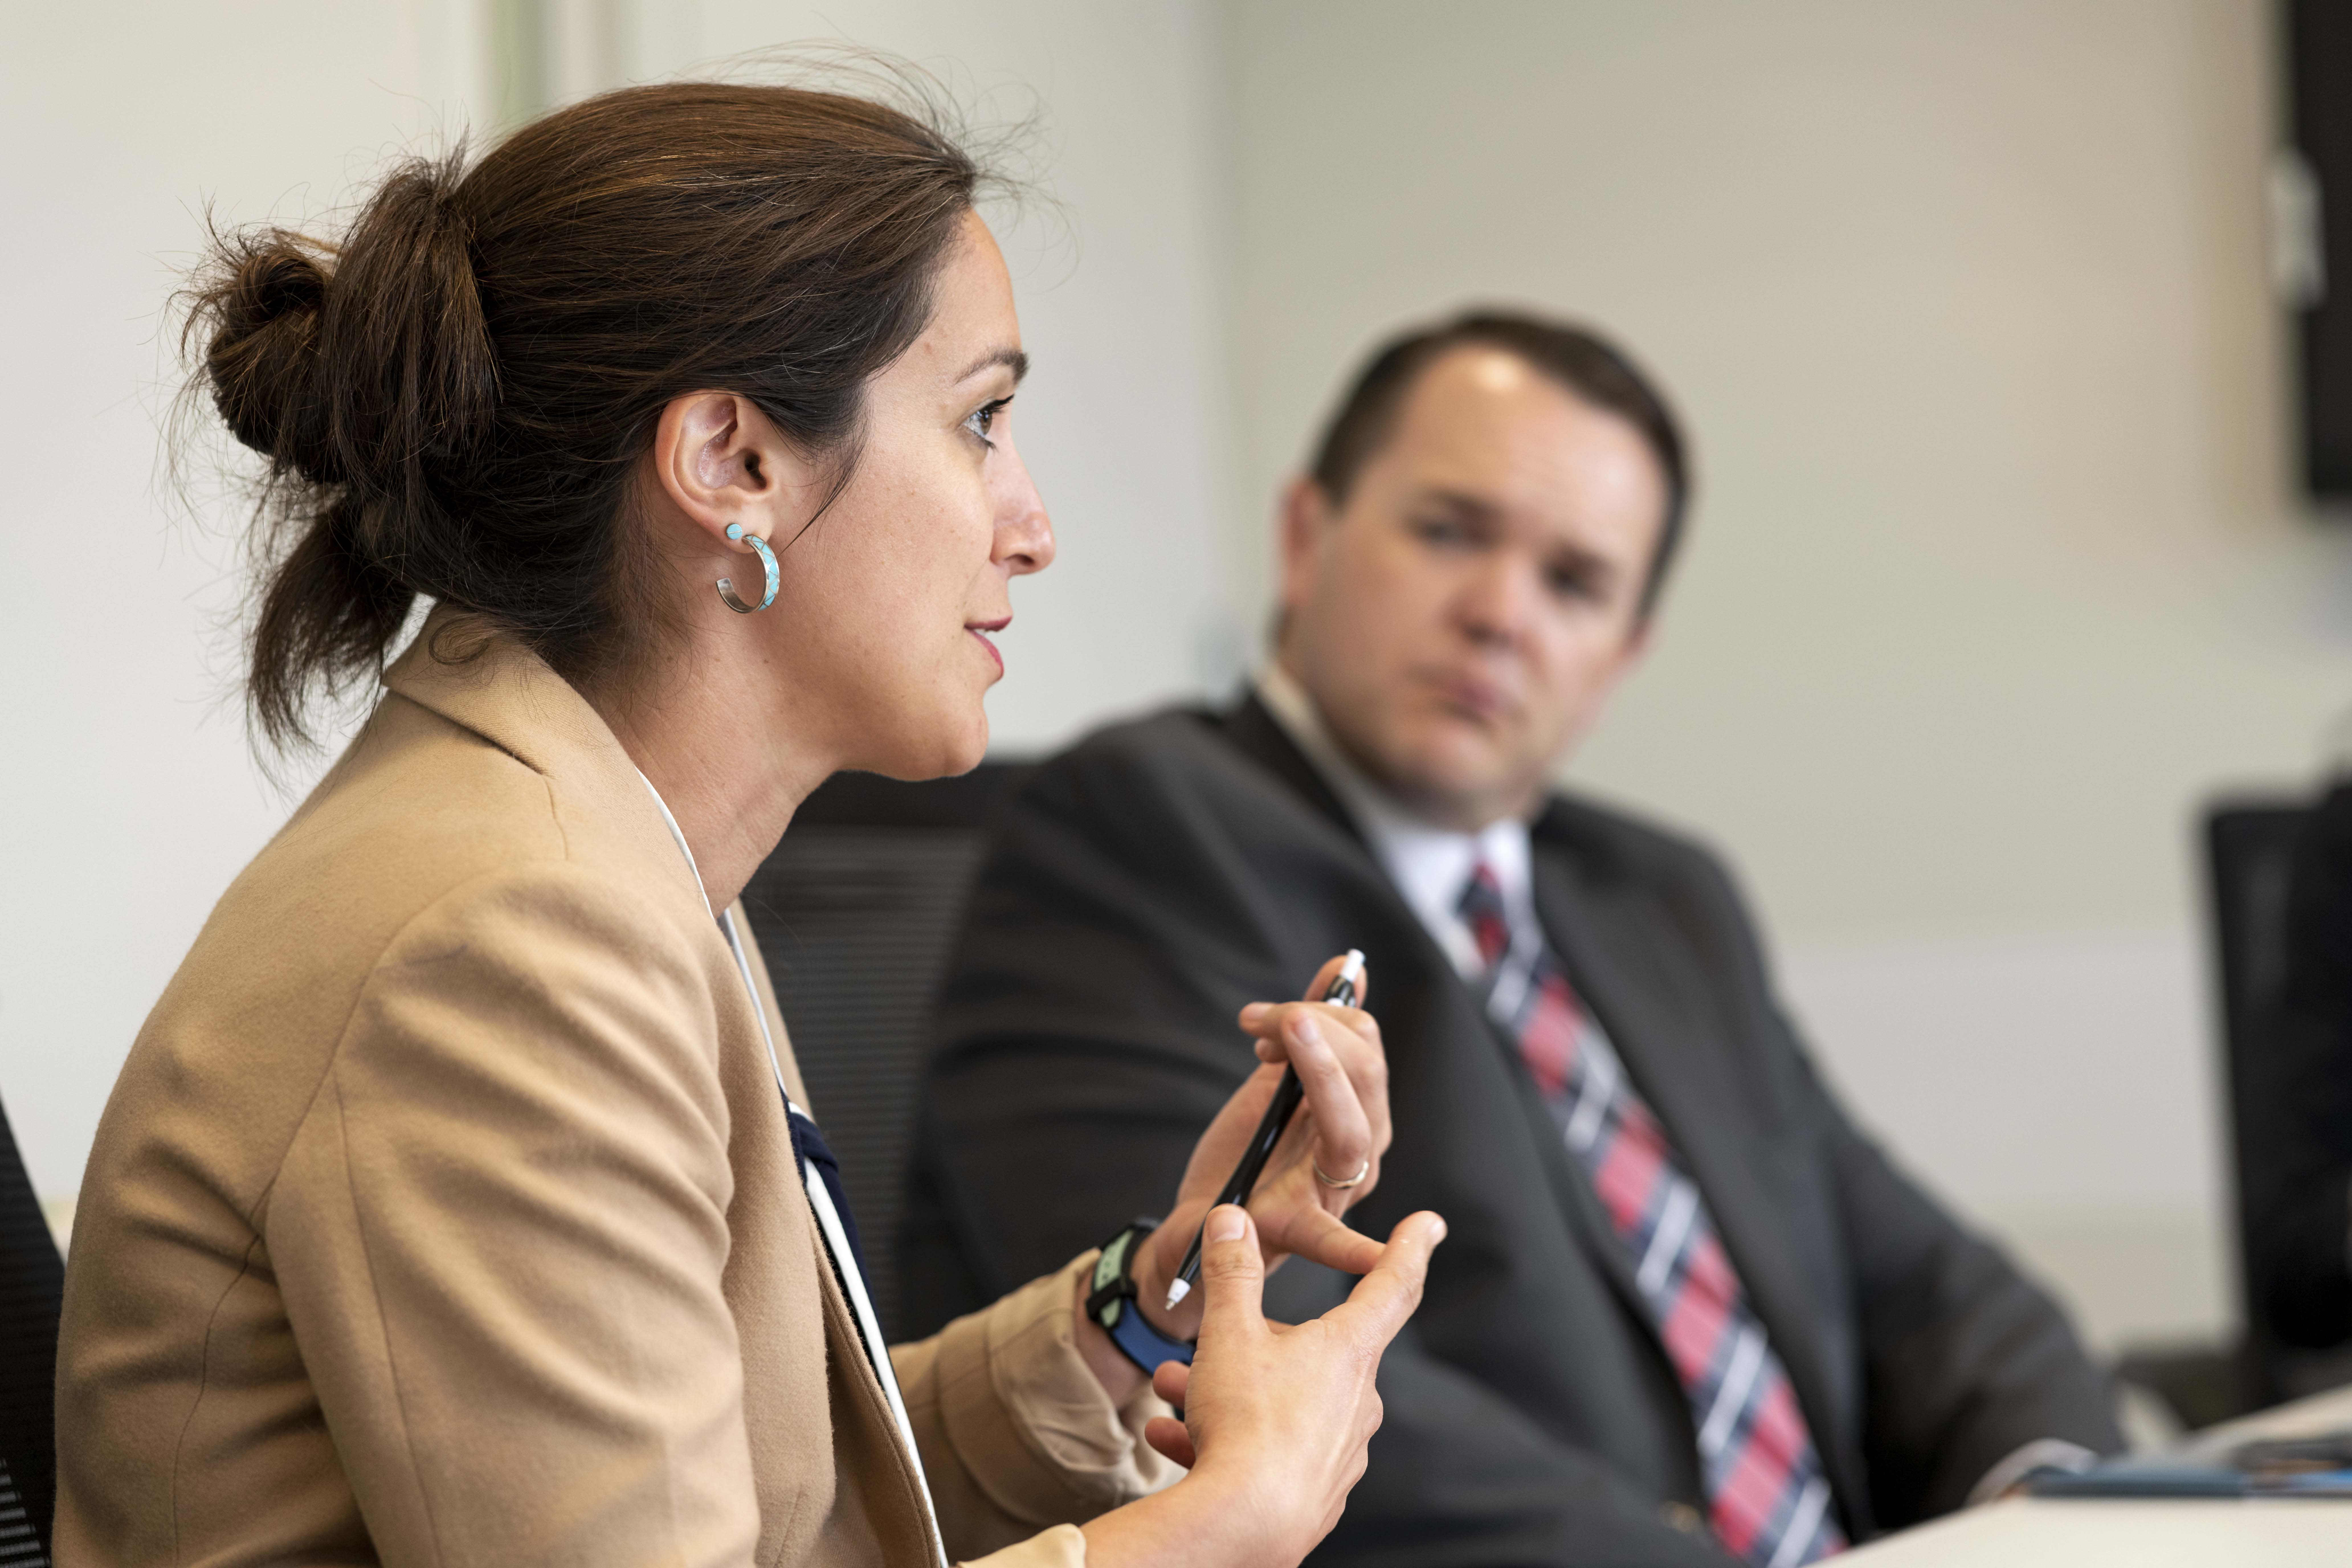 Nina Zelic, senior director for programs for the Lutheran Immigration and Refugee Service, discusses the needs their organization meets while Shawn Johnson, director of Church Humanitarian Services, listens. Latter-day Saint Charities distributed grants to charities to help in their service to those in need on May 14 and 15, 2019.